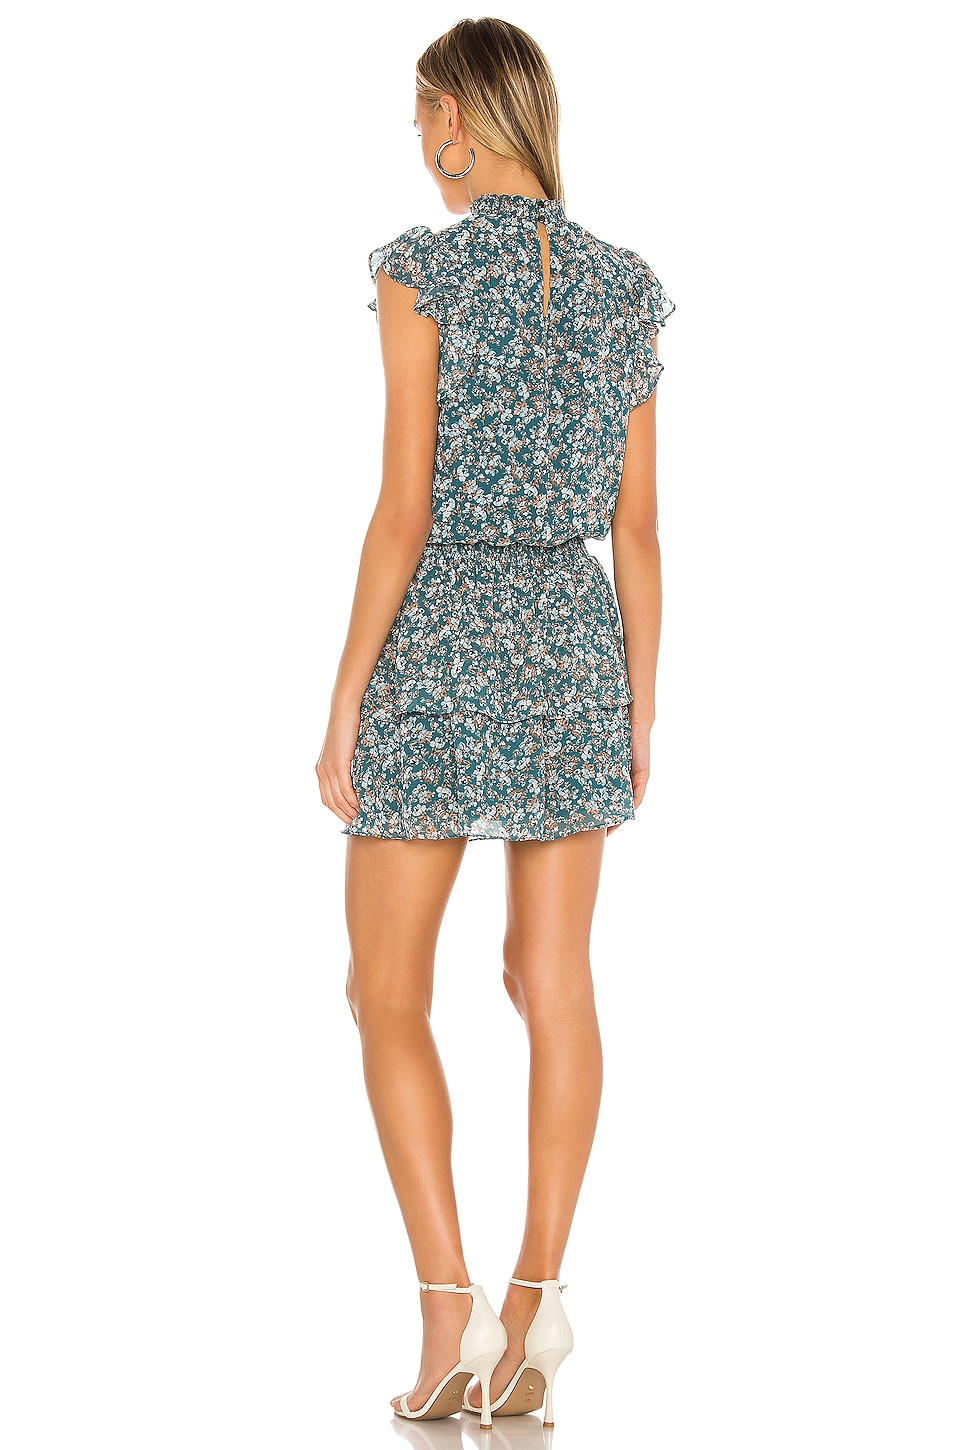 Woodland Floral High Neck Tiered Dress, view 3, click to view large image.